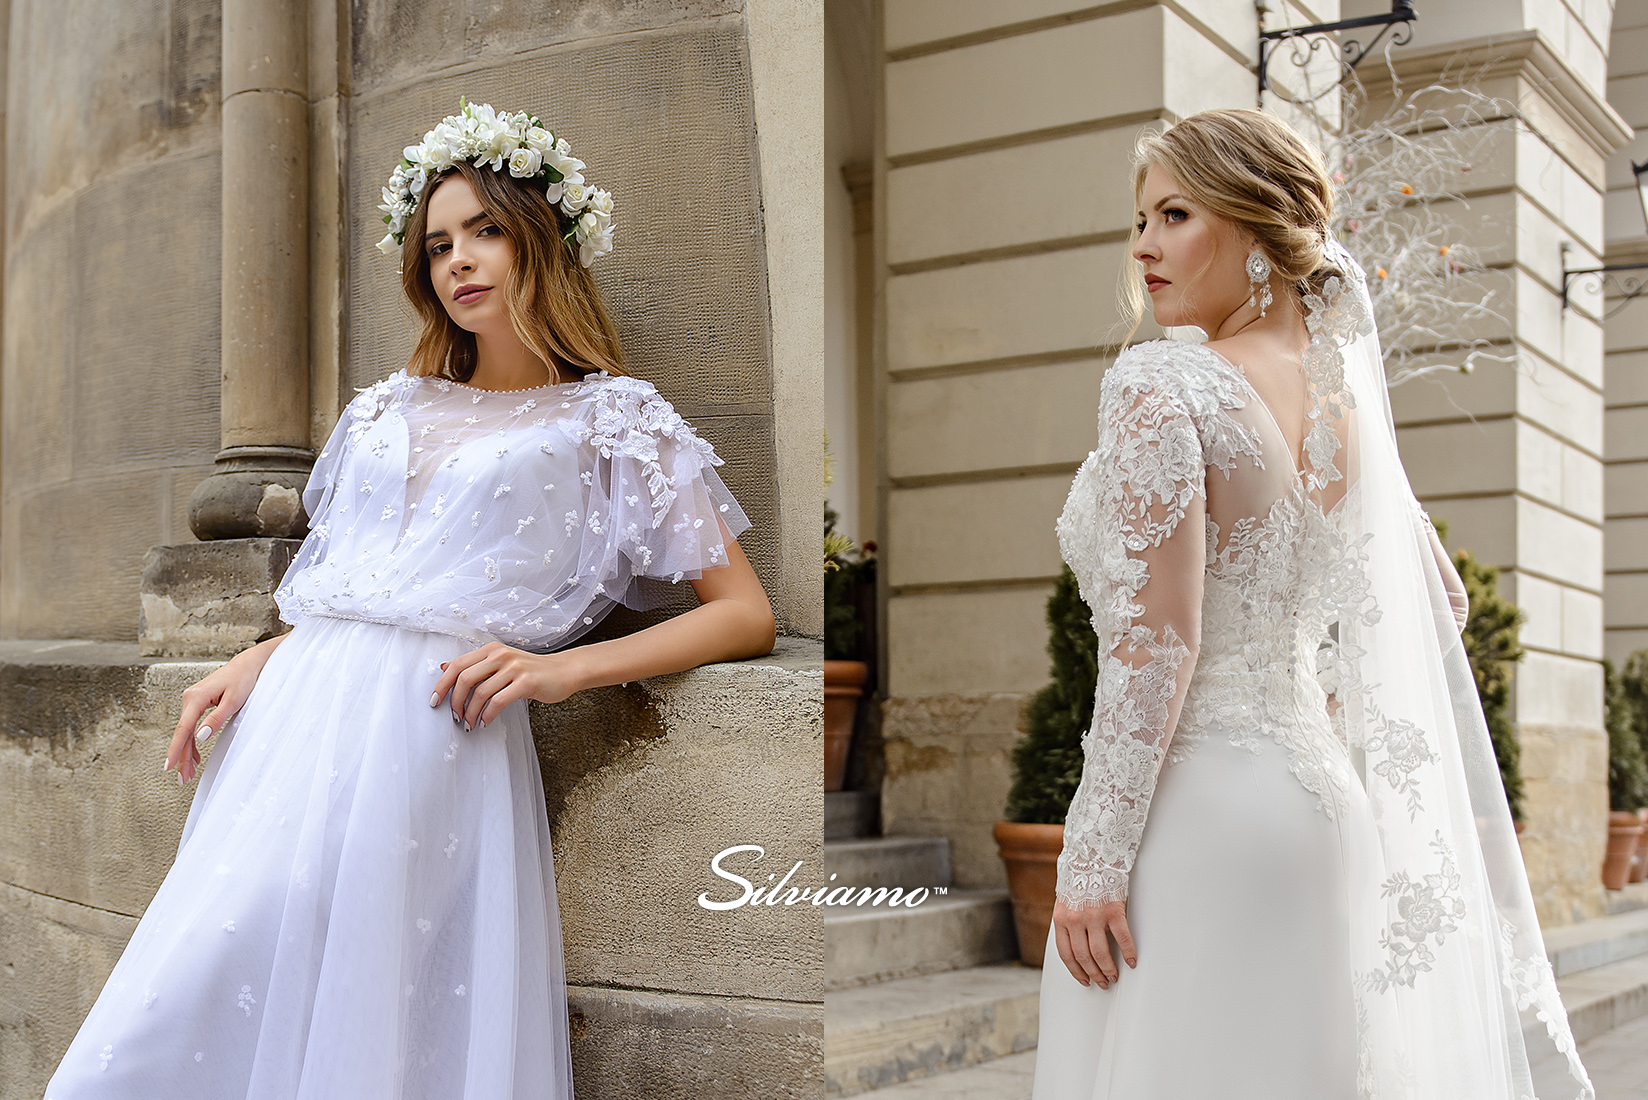 Supernova European Wedding Dresses Wholesale From The Manufacturer